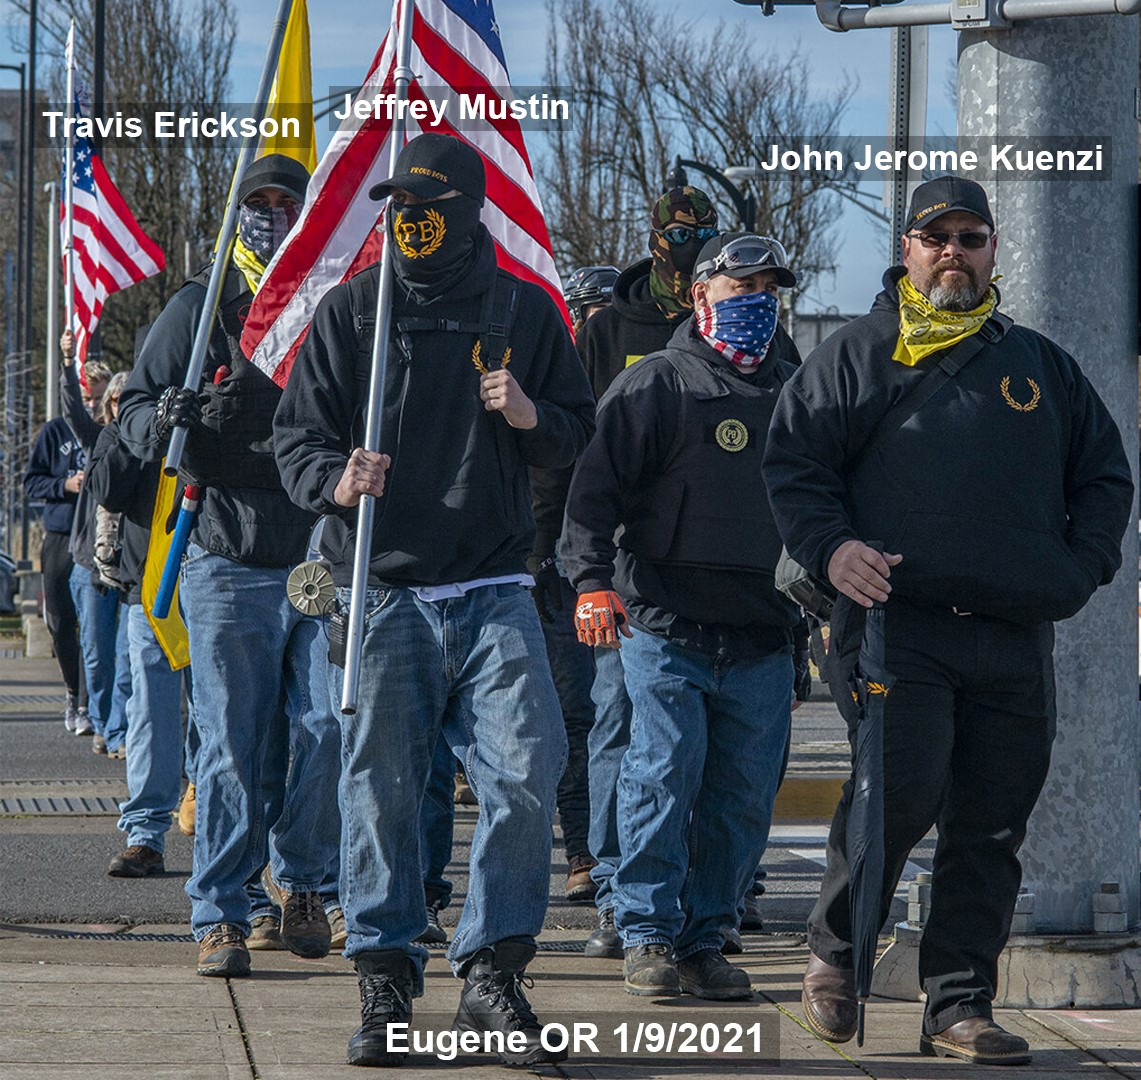 Proud Boys at a 1/9/2021 rally in Eugene.